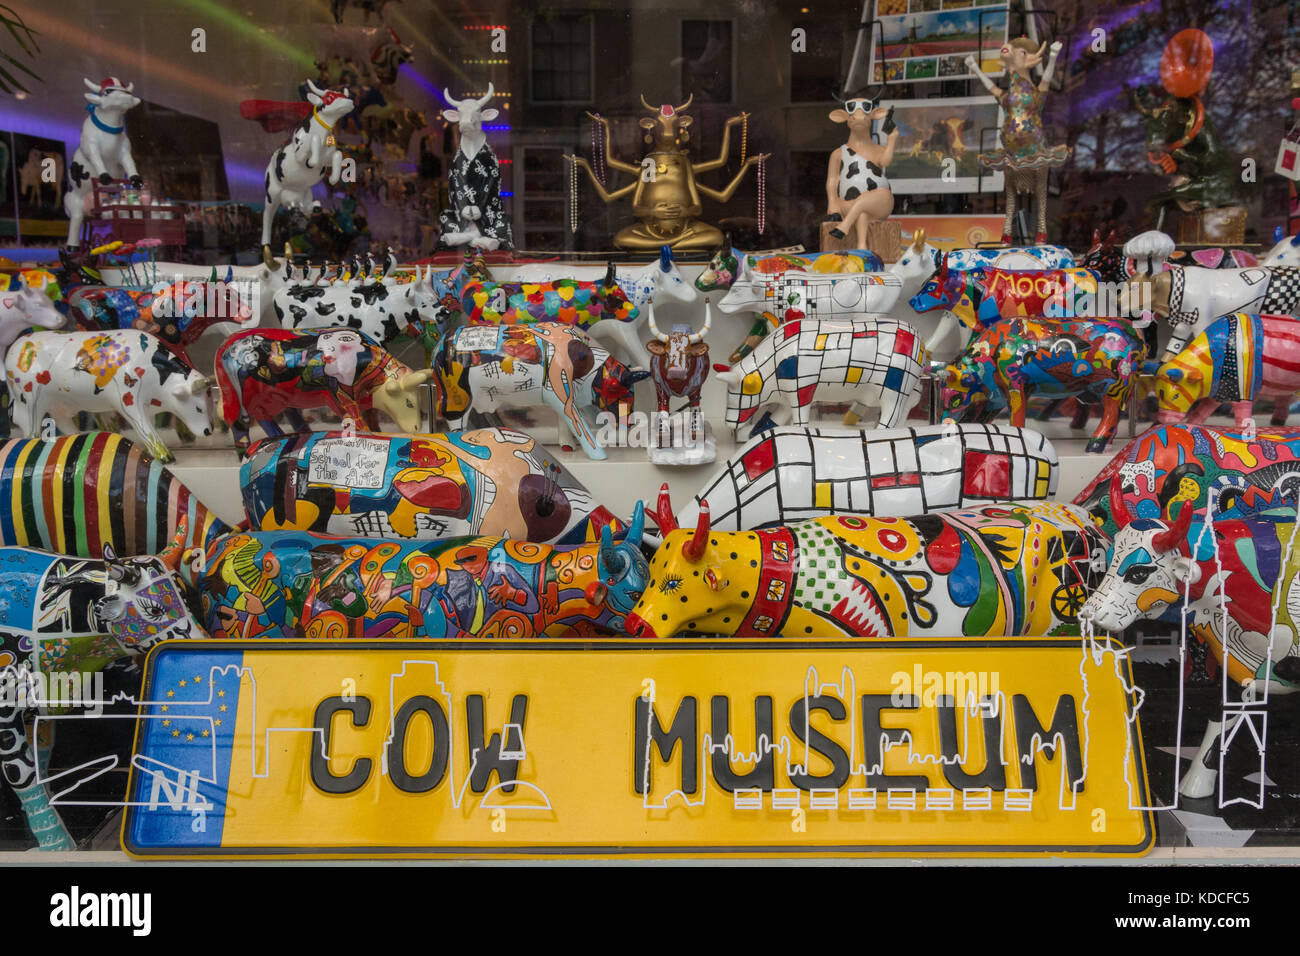 Amsterdam shop window - although the sign says 'Cow Museum' this is a shop selling eccentric cow shaped - Stock Image